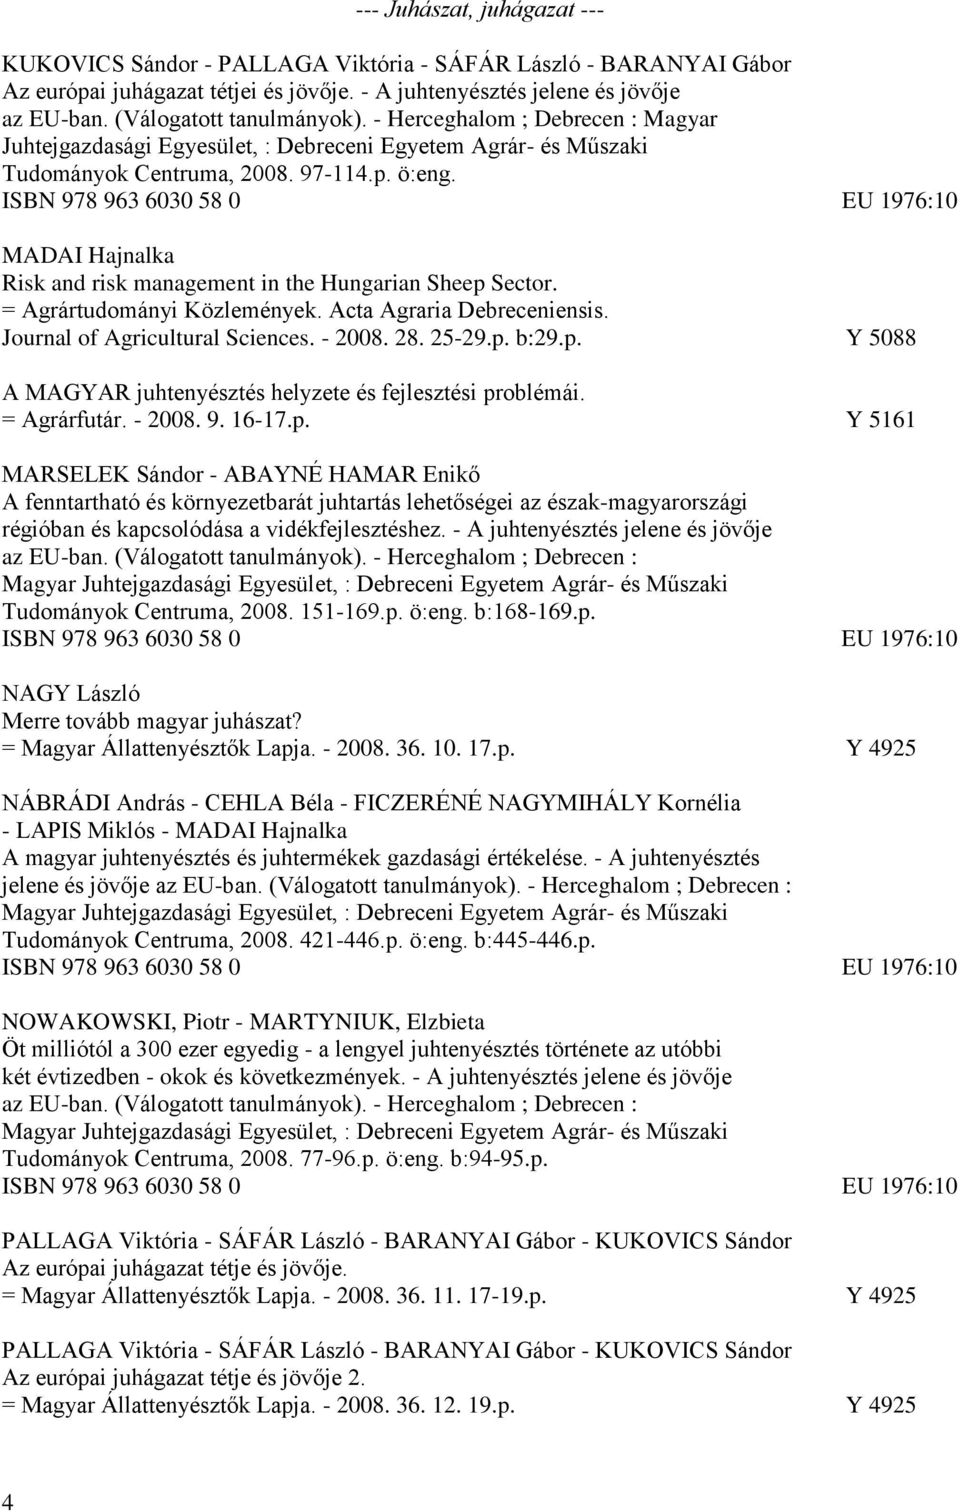 ISBN 978 963 6030 58 0 EU 1976:10 MADAI Hajnalka Risk and risk management in the Hungarian Sheep Sector. = Agrártudományi Közlemények. Acta Agraria Debreceniensis. Journal of Agricultural Sciences.